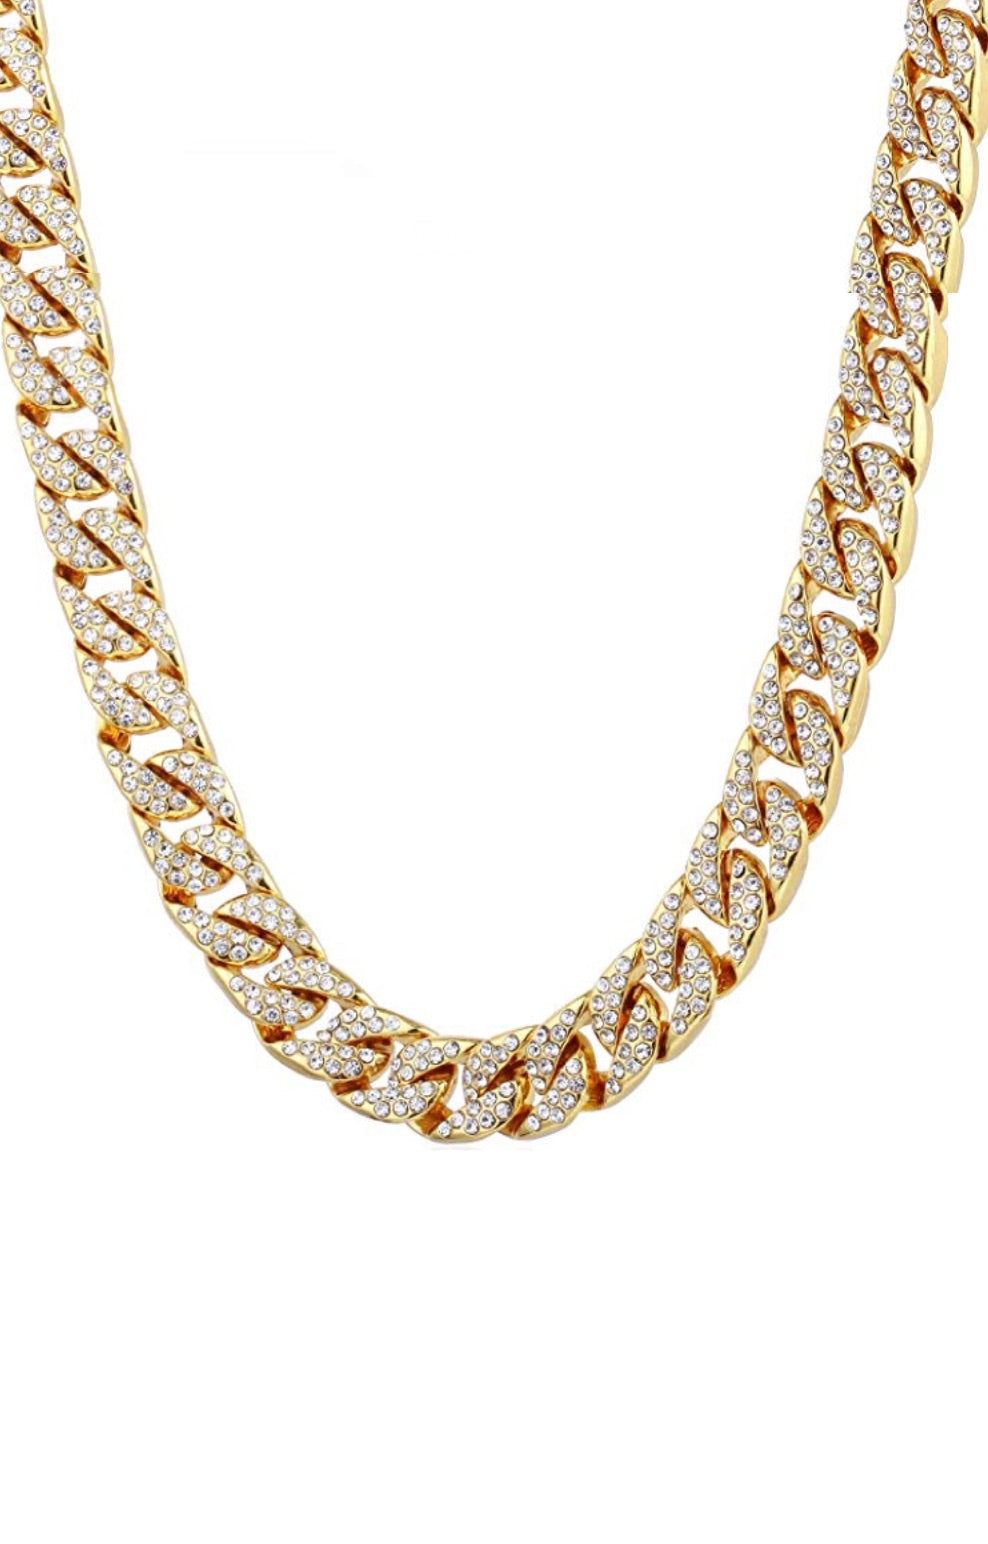 18k Gold Cz Link Necklace